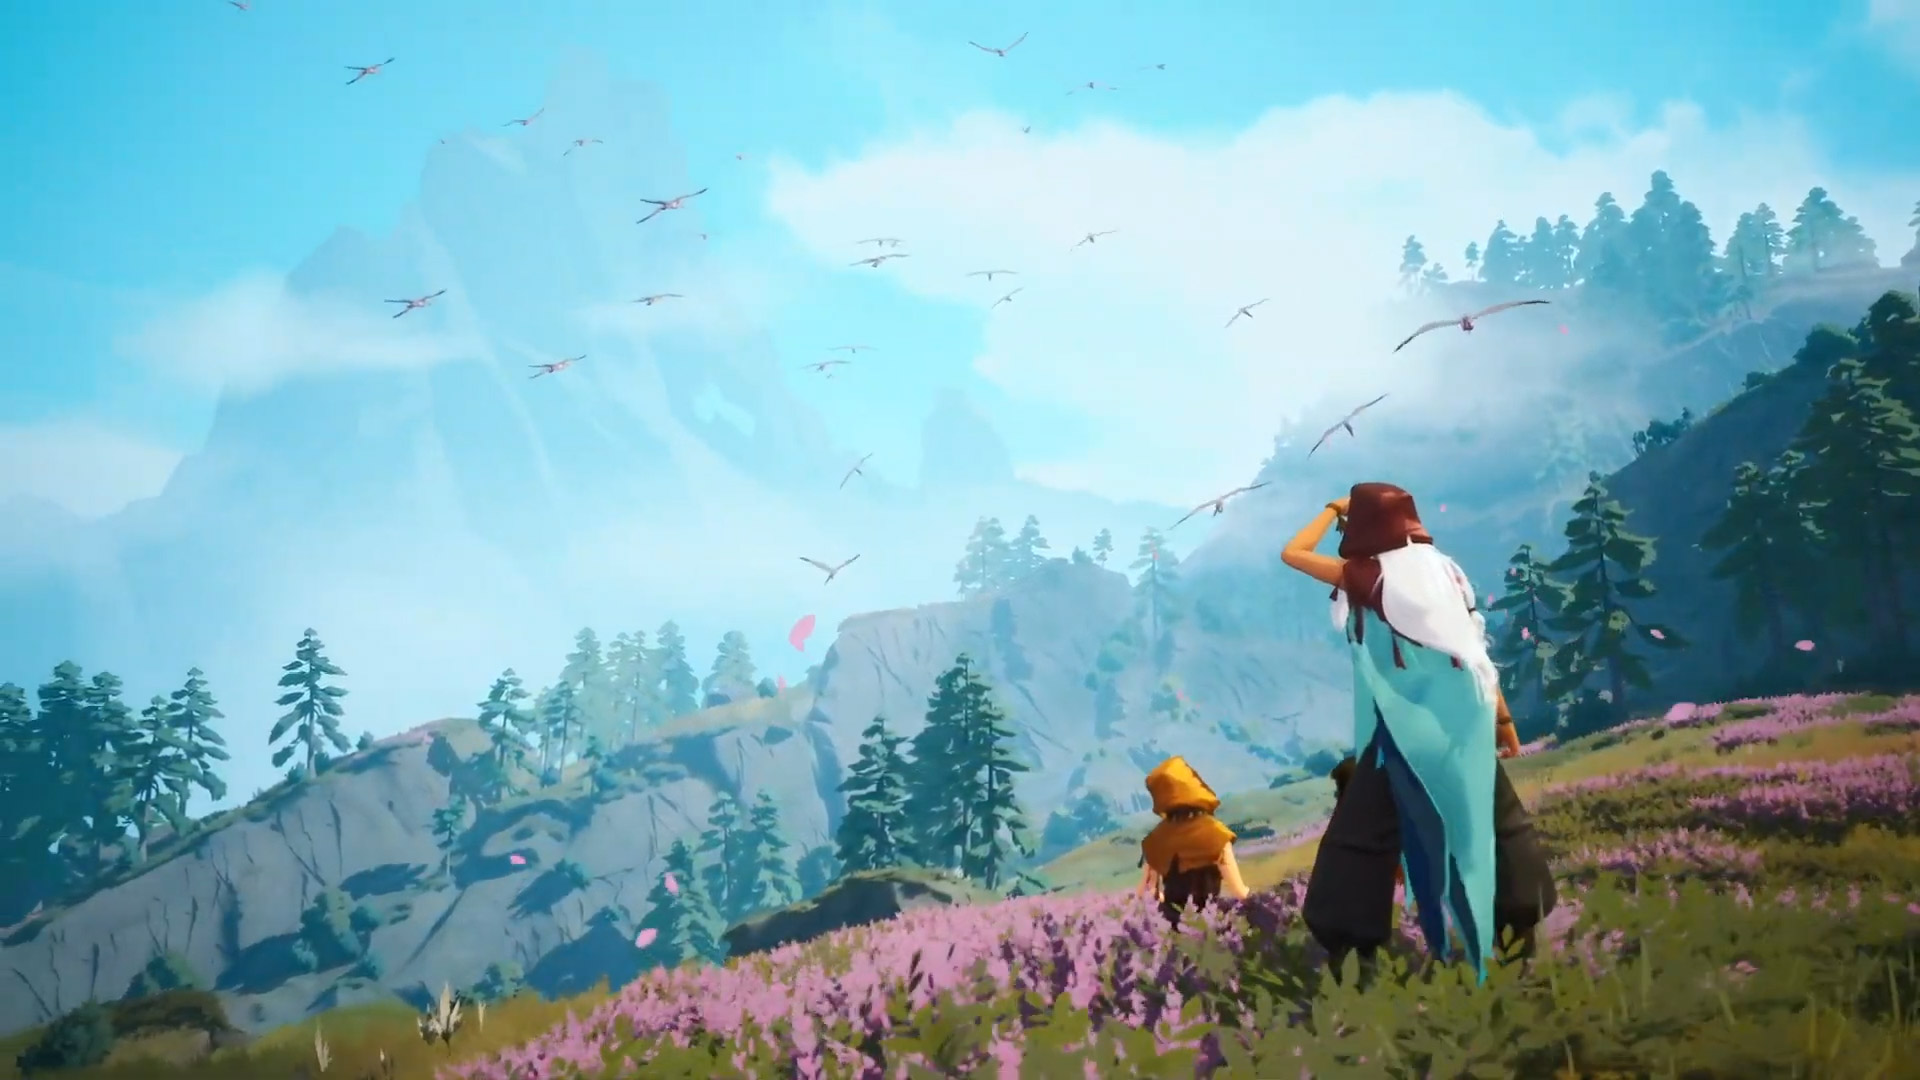 Rare hopes to create a 'natural and magical world' in Everwild screenshot